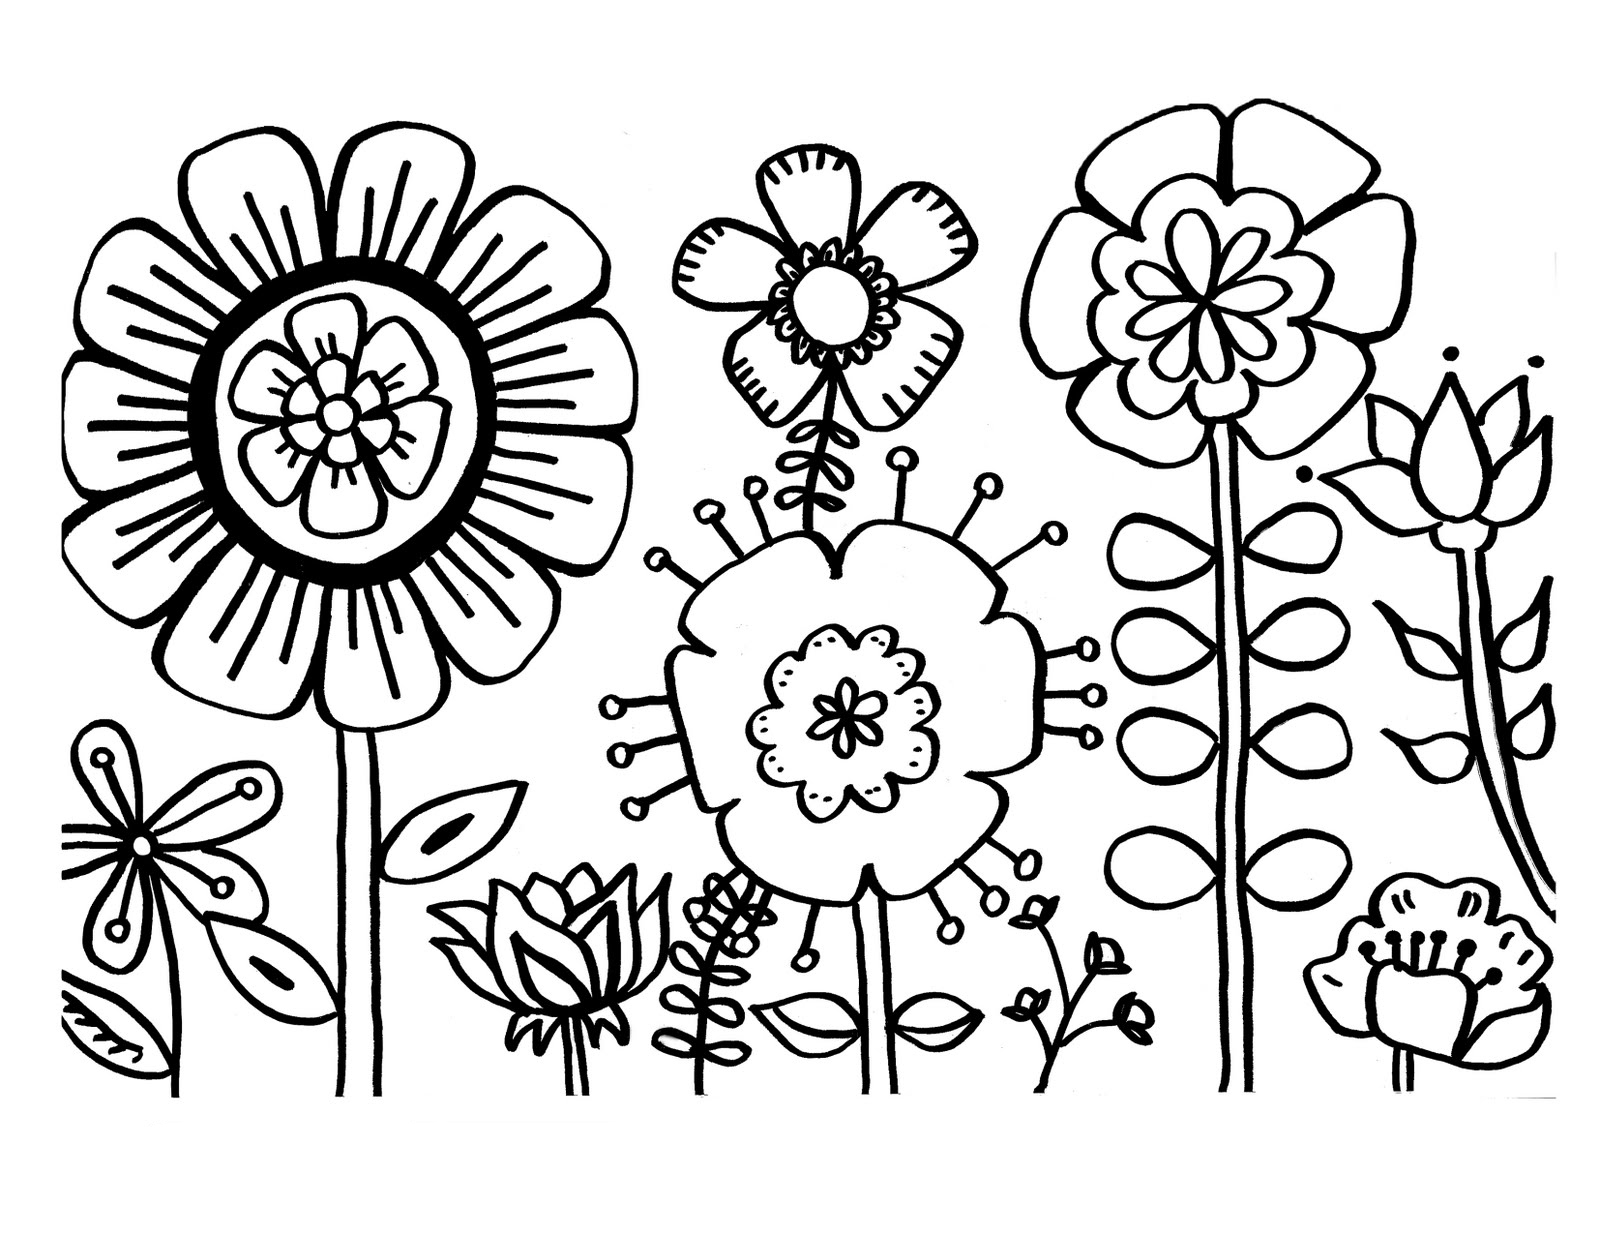 flower coloring pages to print free printable flower coloring pages for kids best print coloring to pages flower